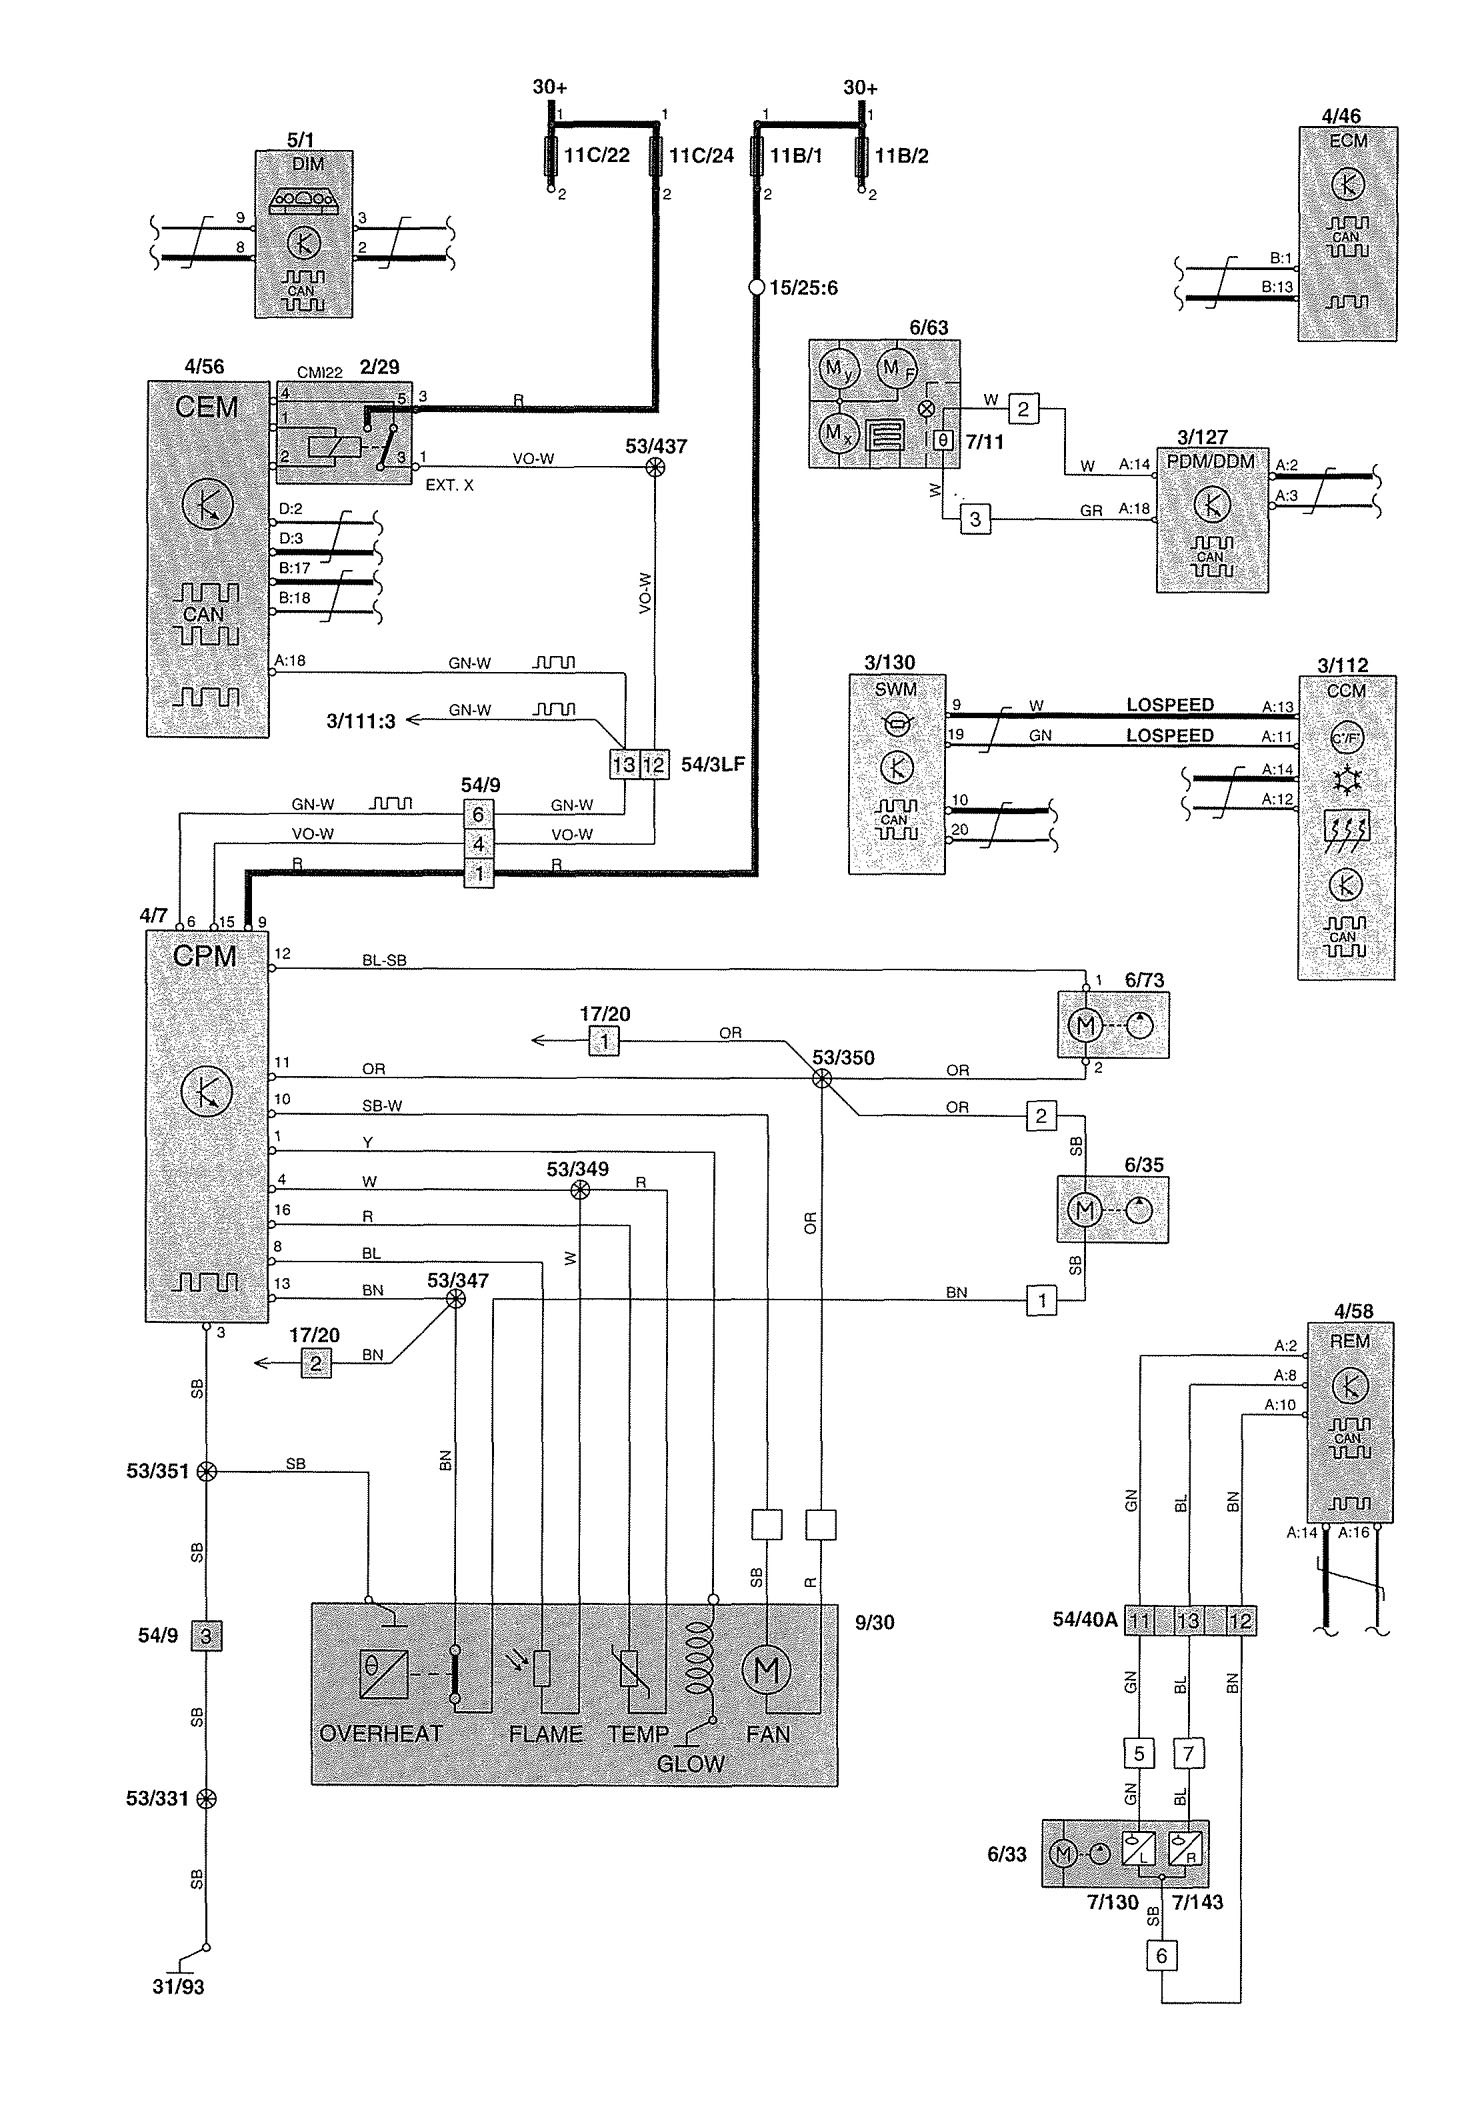 volvo xc70 fuse box diagram